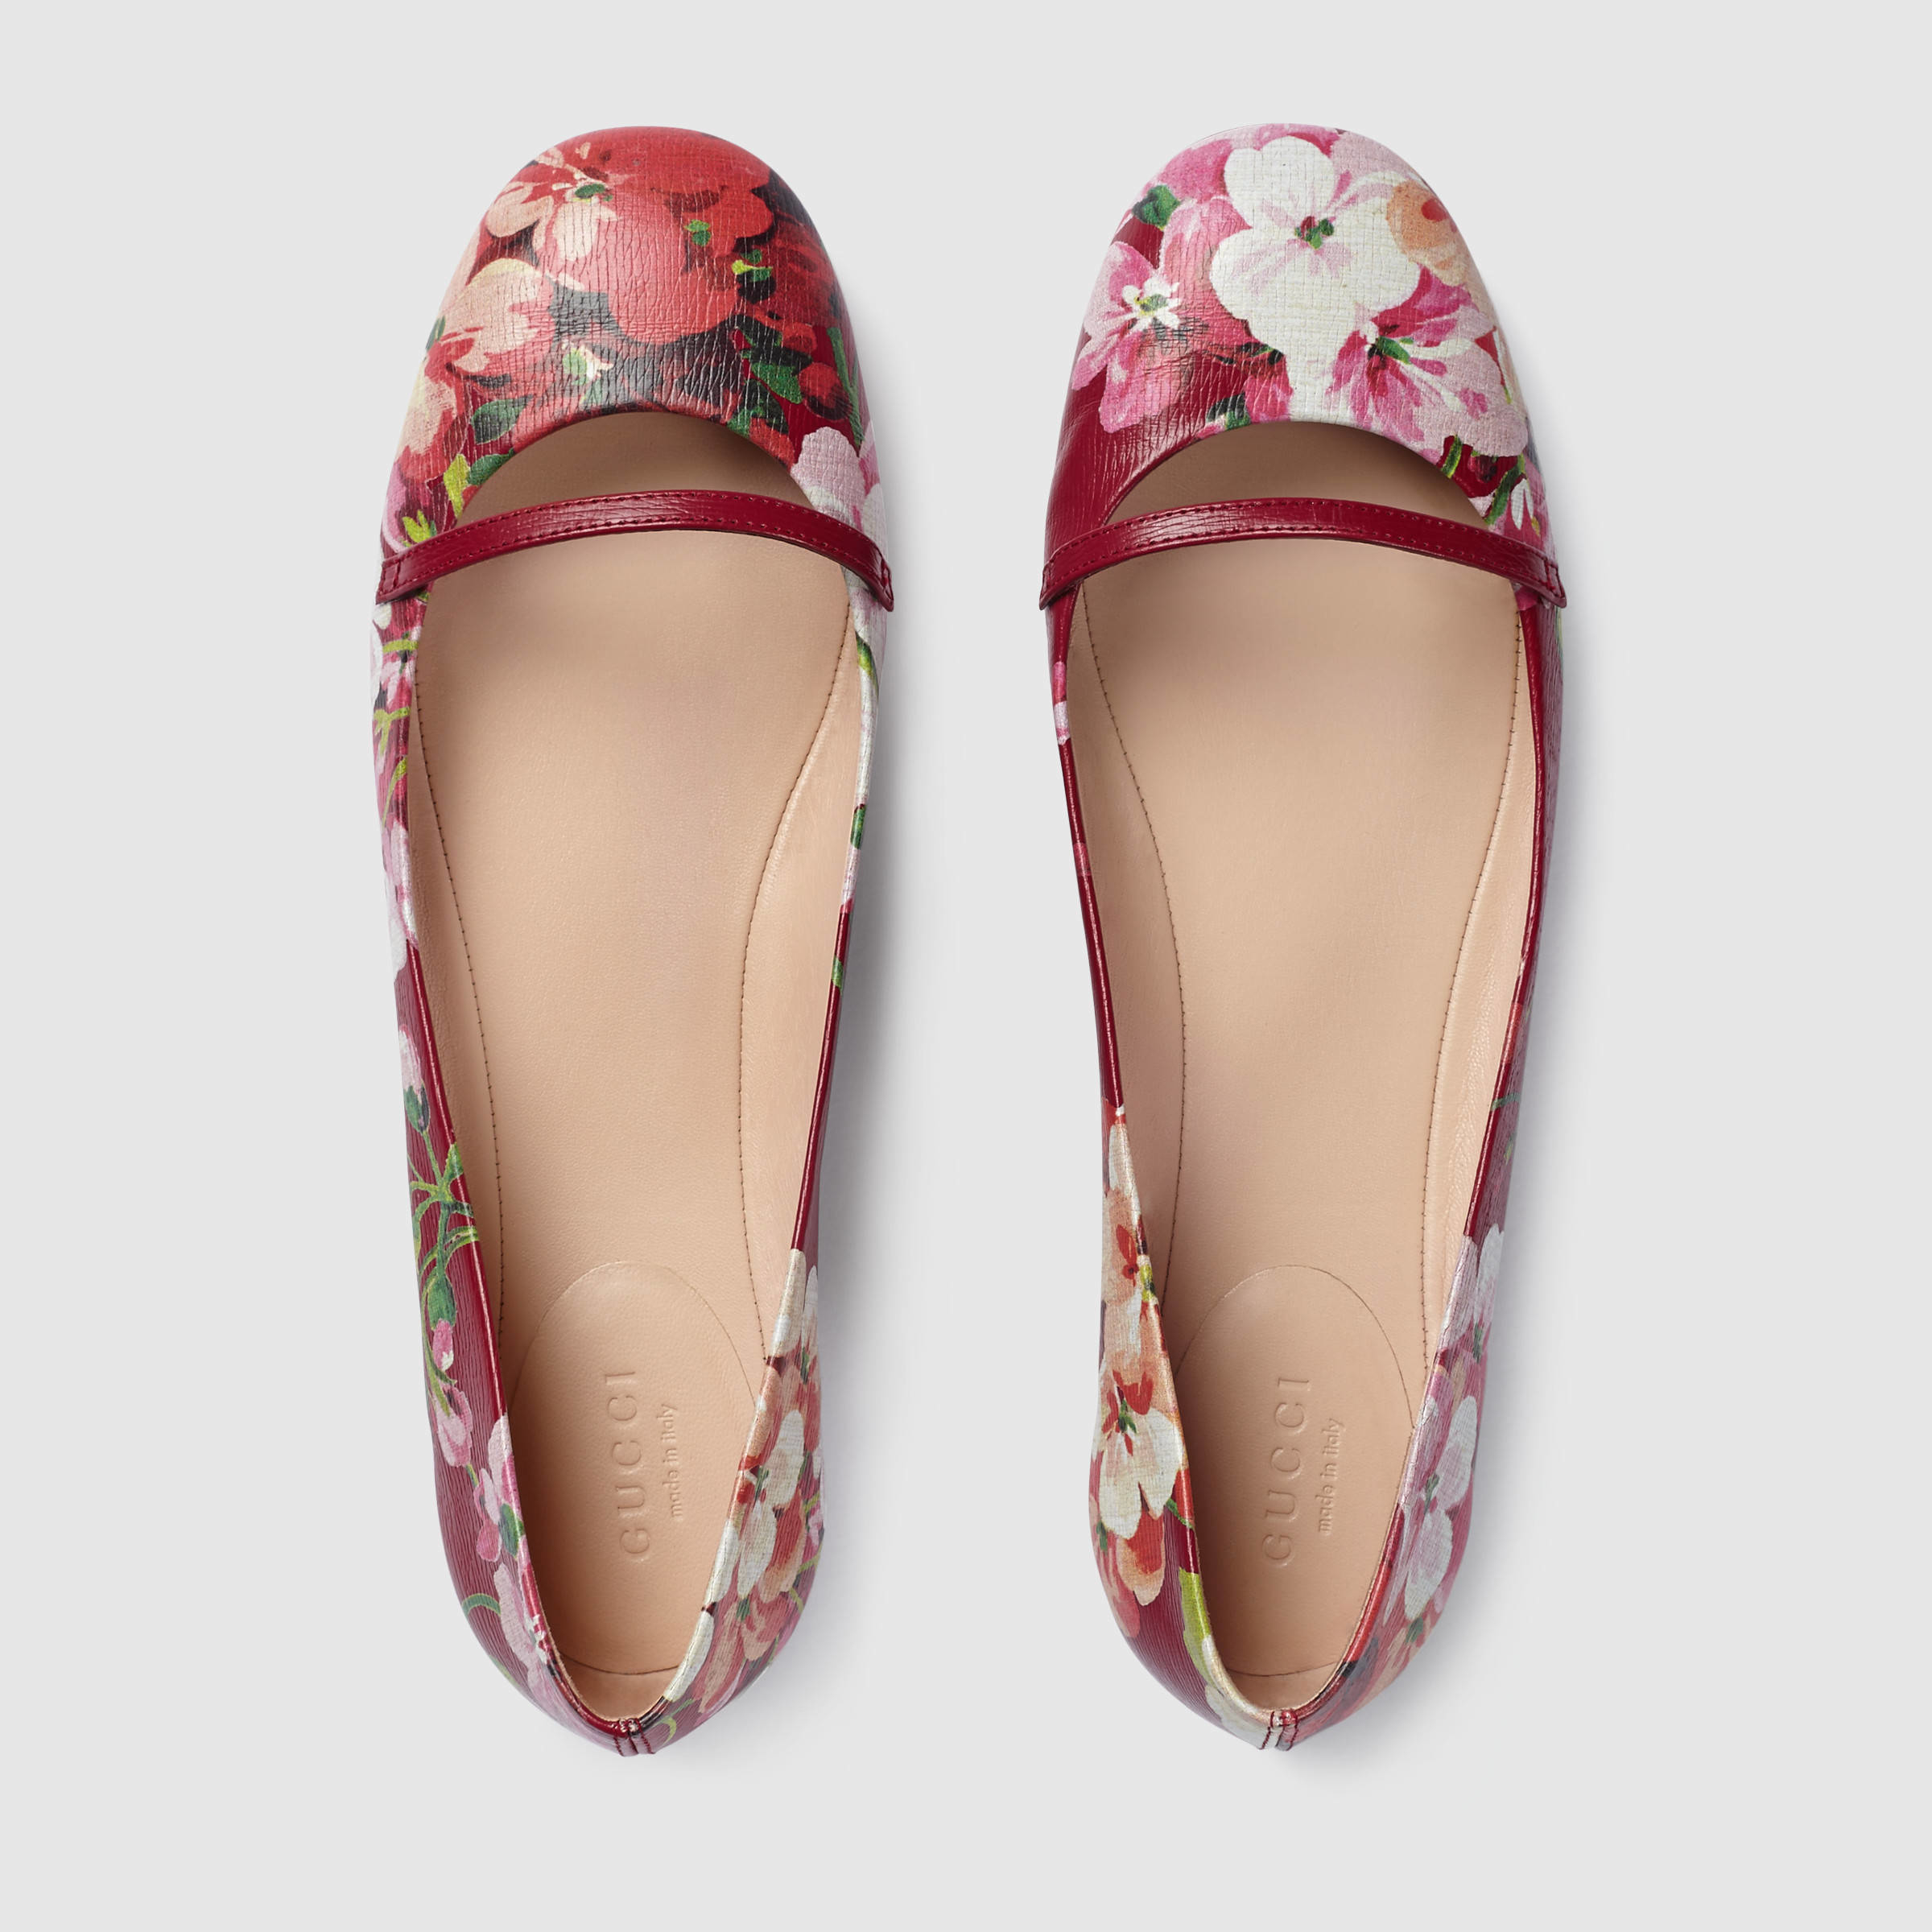 Gucci Blooms Leather Flat in Red (cerise leather) | Lyst